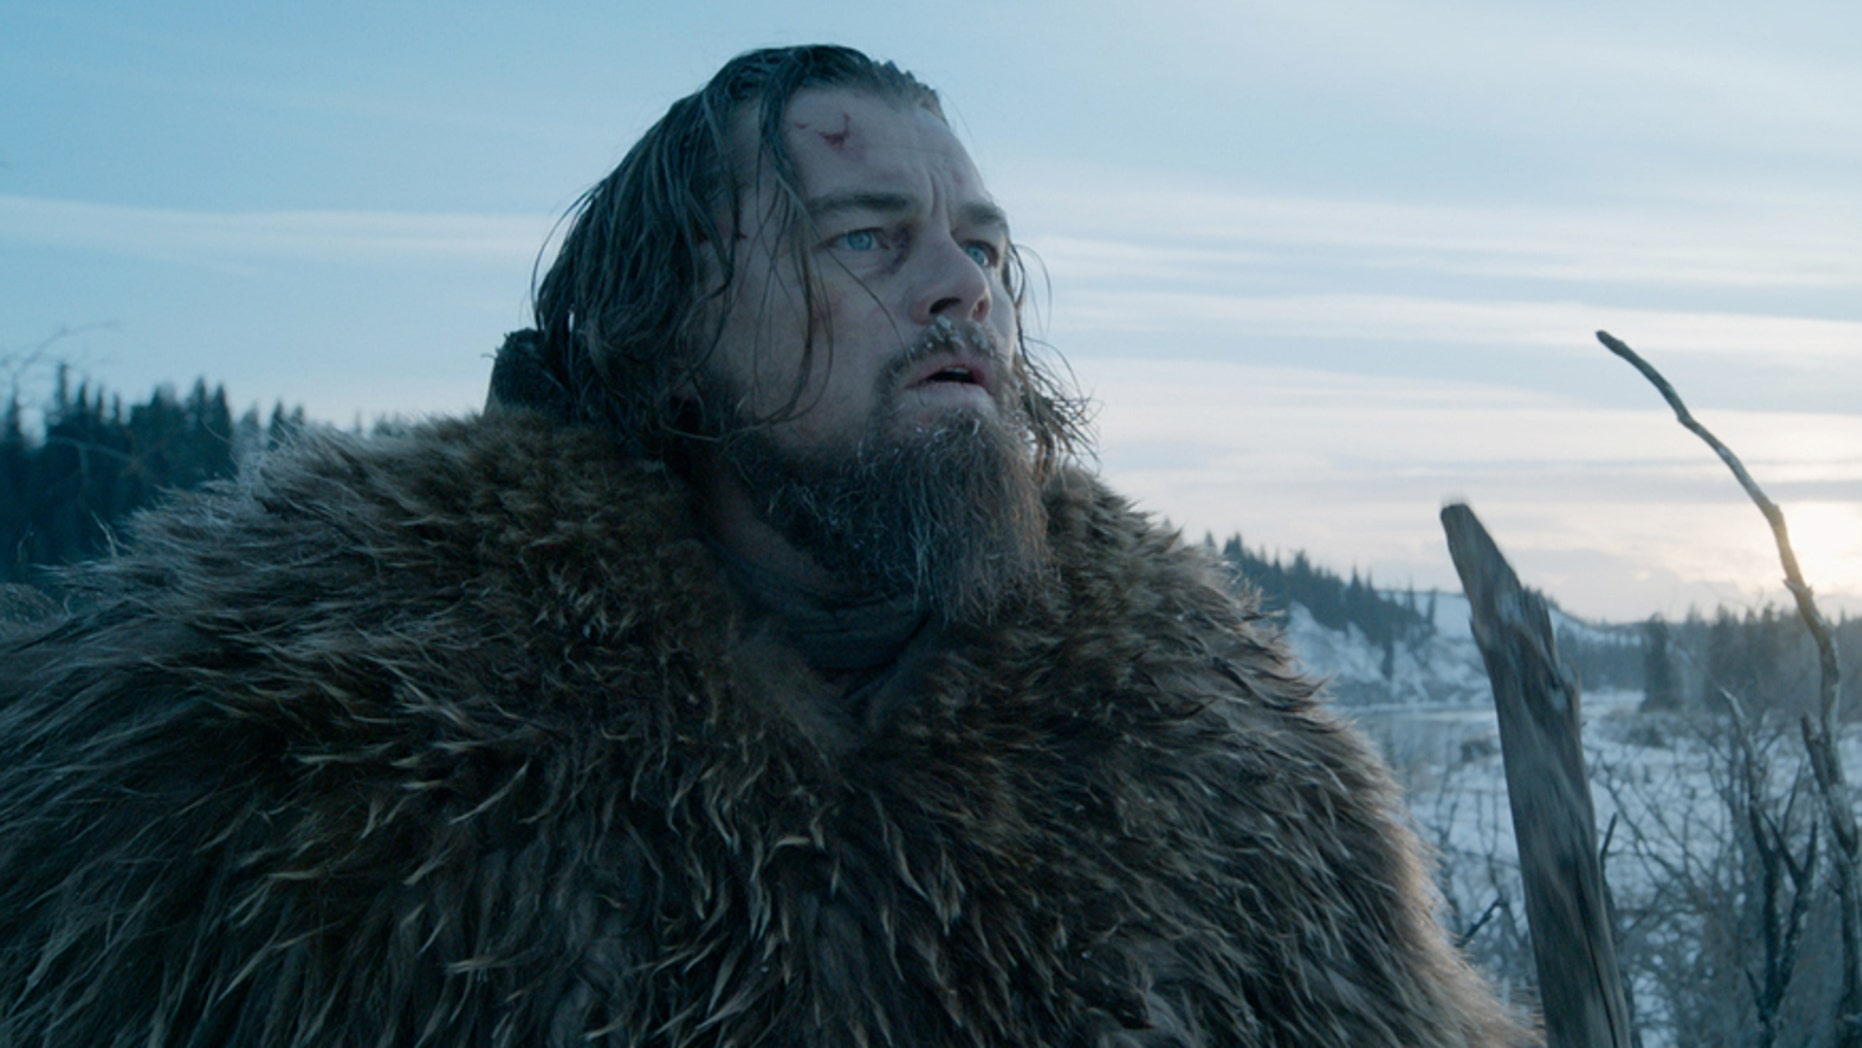 """This photo provided by courtesy of  Twentieth Century Fox shows, Leonardo DiCaprio as Hugh Glass, in a scene from the film, """"The Revenant,"""" directed by Alejandro Gonzalez Inarritu. The 88th annual Academy Awards nominations will be announced beginning at 5:30 a.m. PST on Thursday, Jan. 14, 2016, at the Academy of Motion Picture Arts and Sciences in Beverly Hills, Calif.  The Oscars will be presented on Feb. 28, 2016, in Los Angeles. (Courtesy Twentieth Century Fox via AP)"""